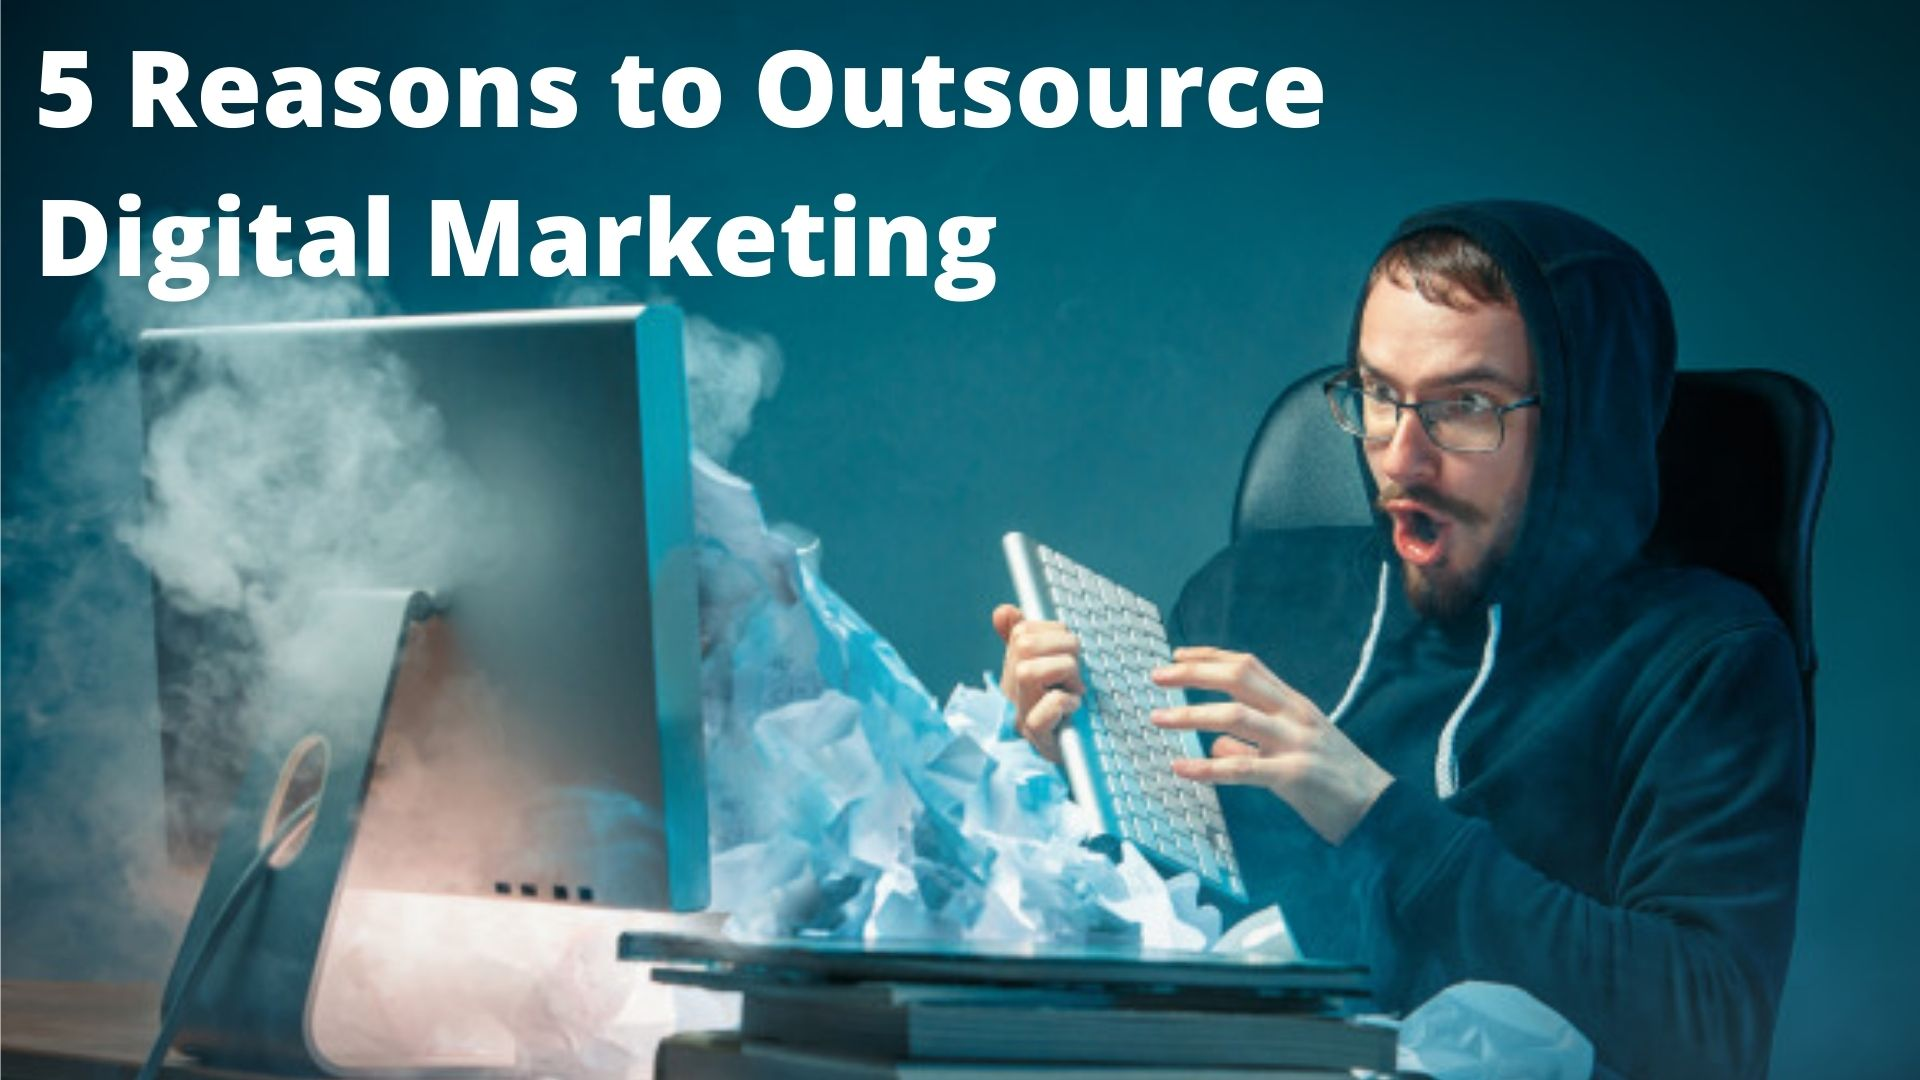 5 Reasons to Outsource Digital Marketing